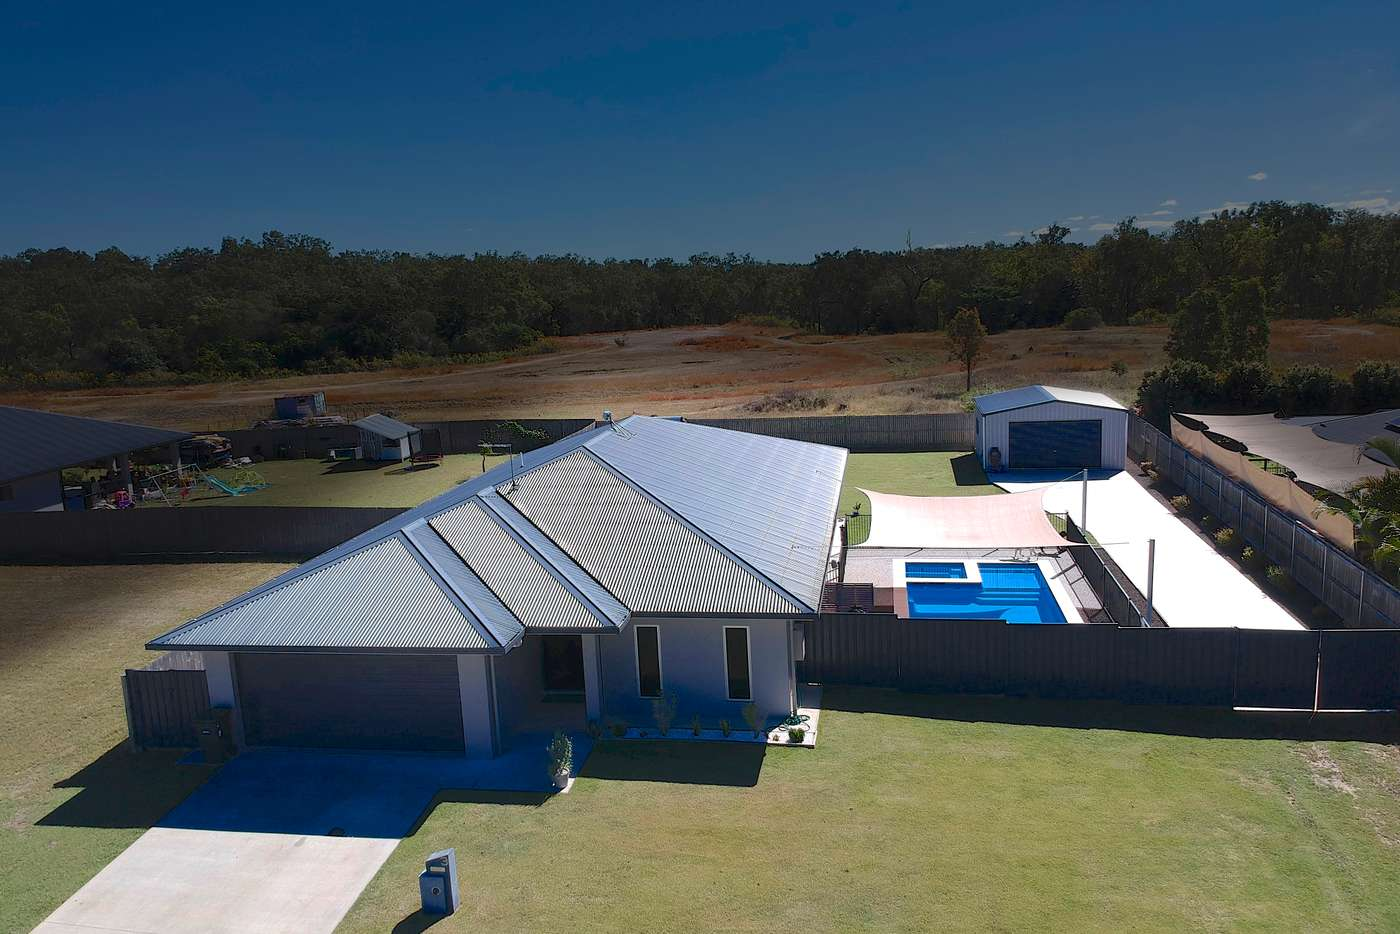 Main view of Homely house listing, 3 Elliott Close, Mareeba QLD 4880